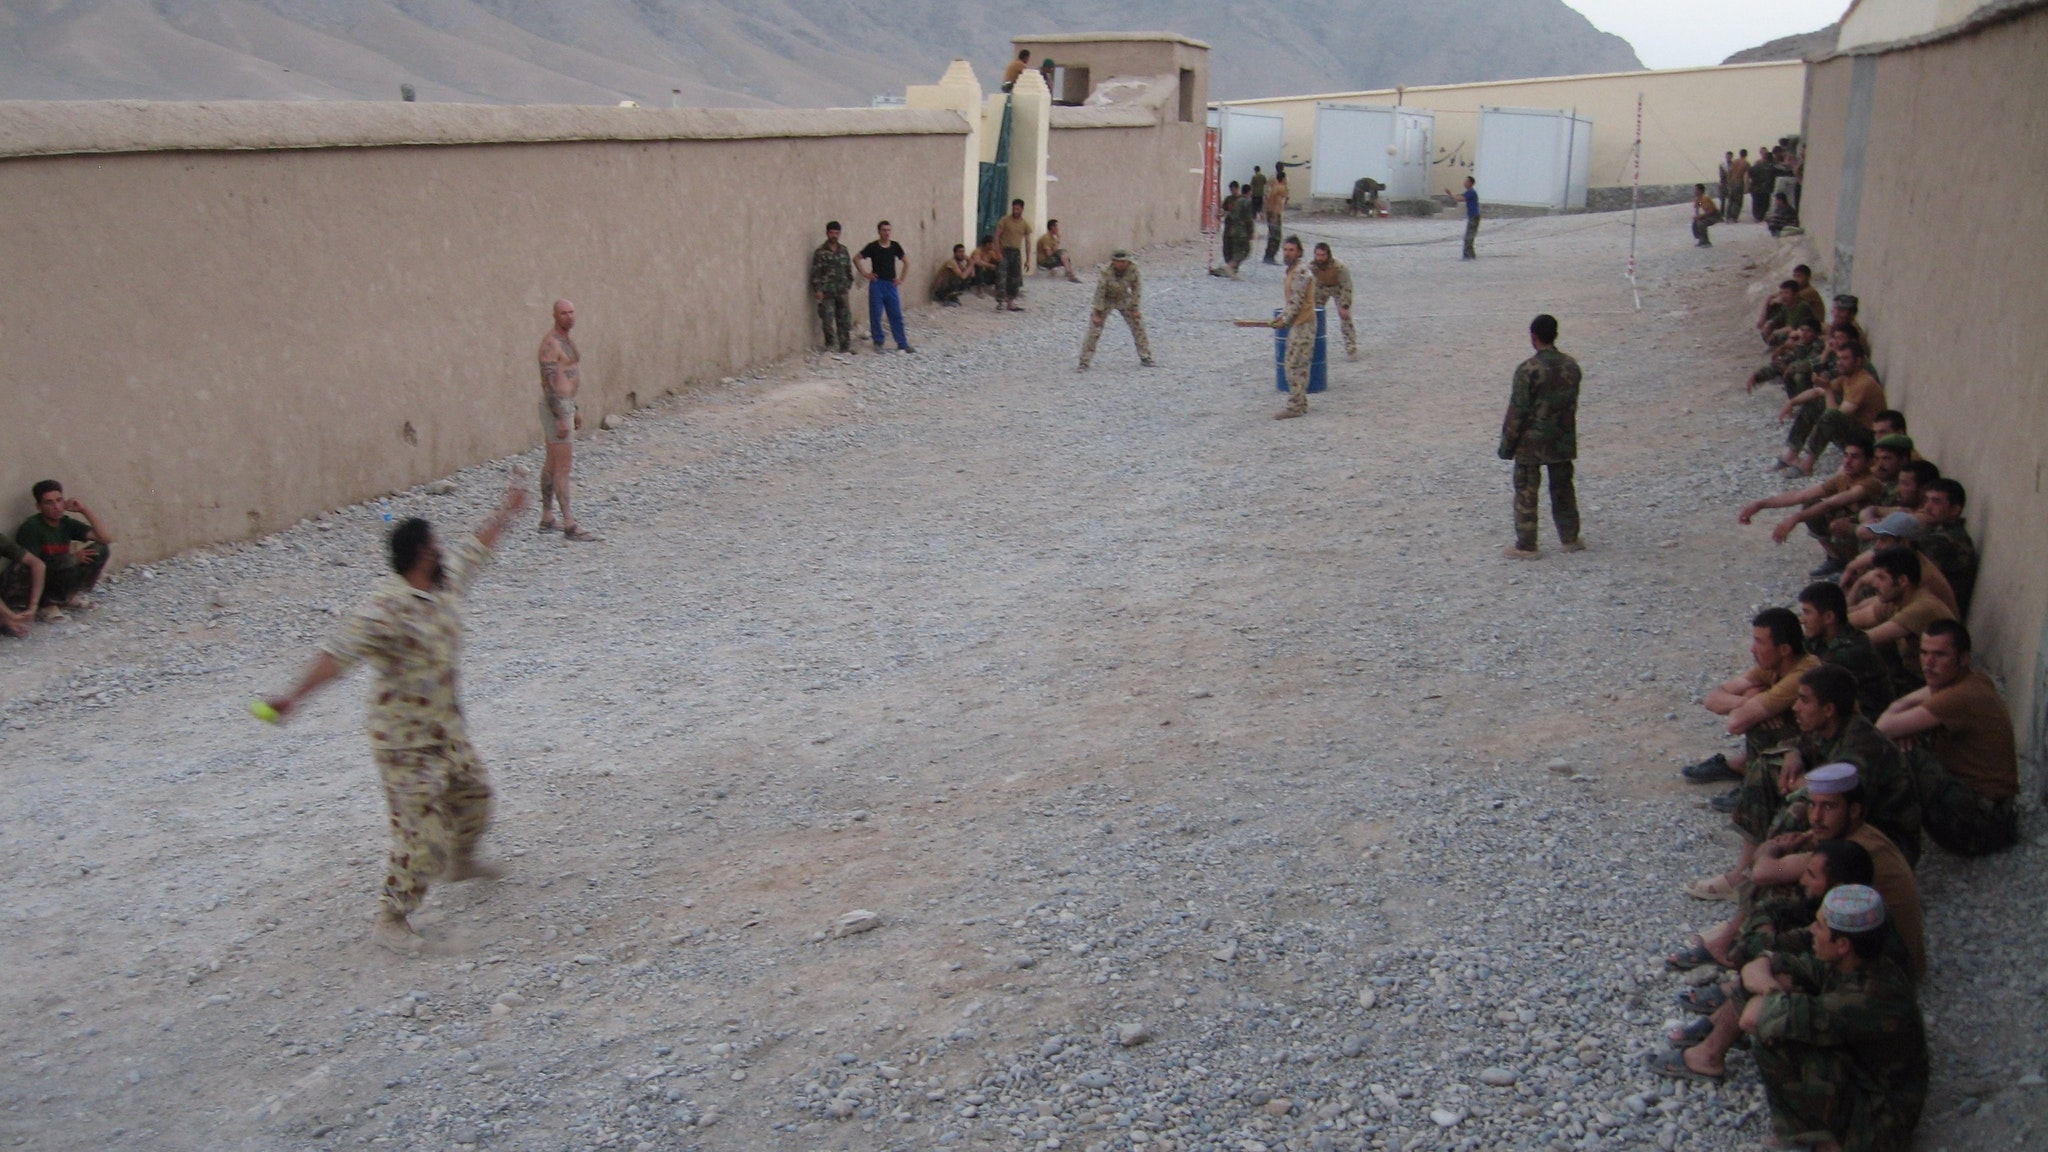 The day before 2008 Afghanistan